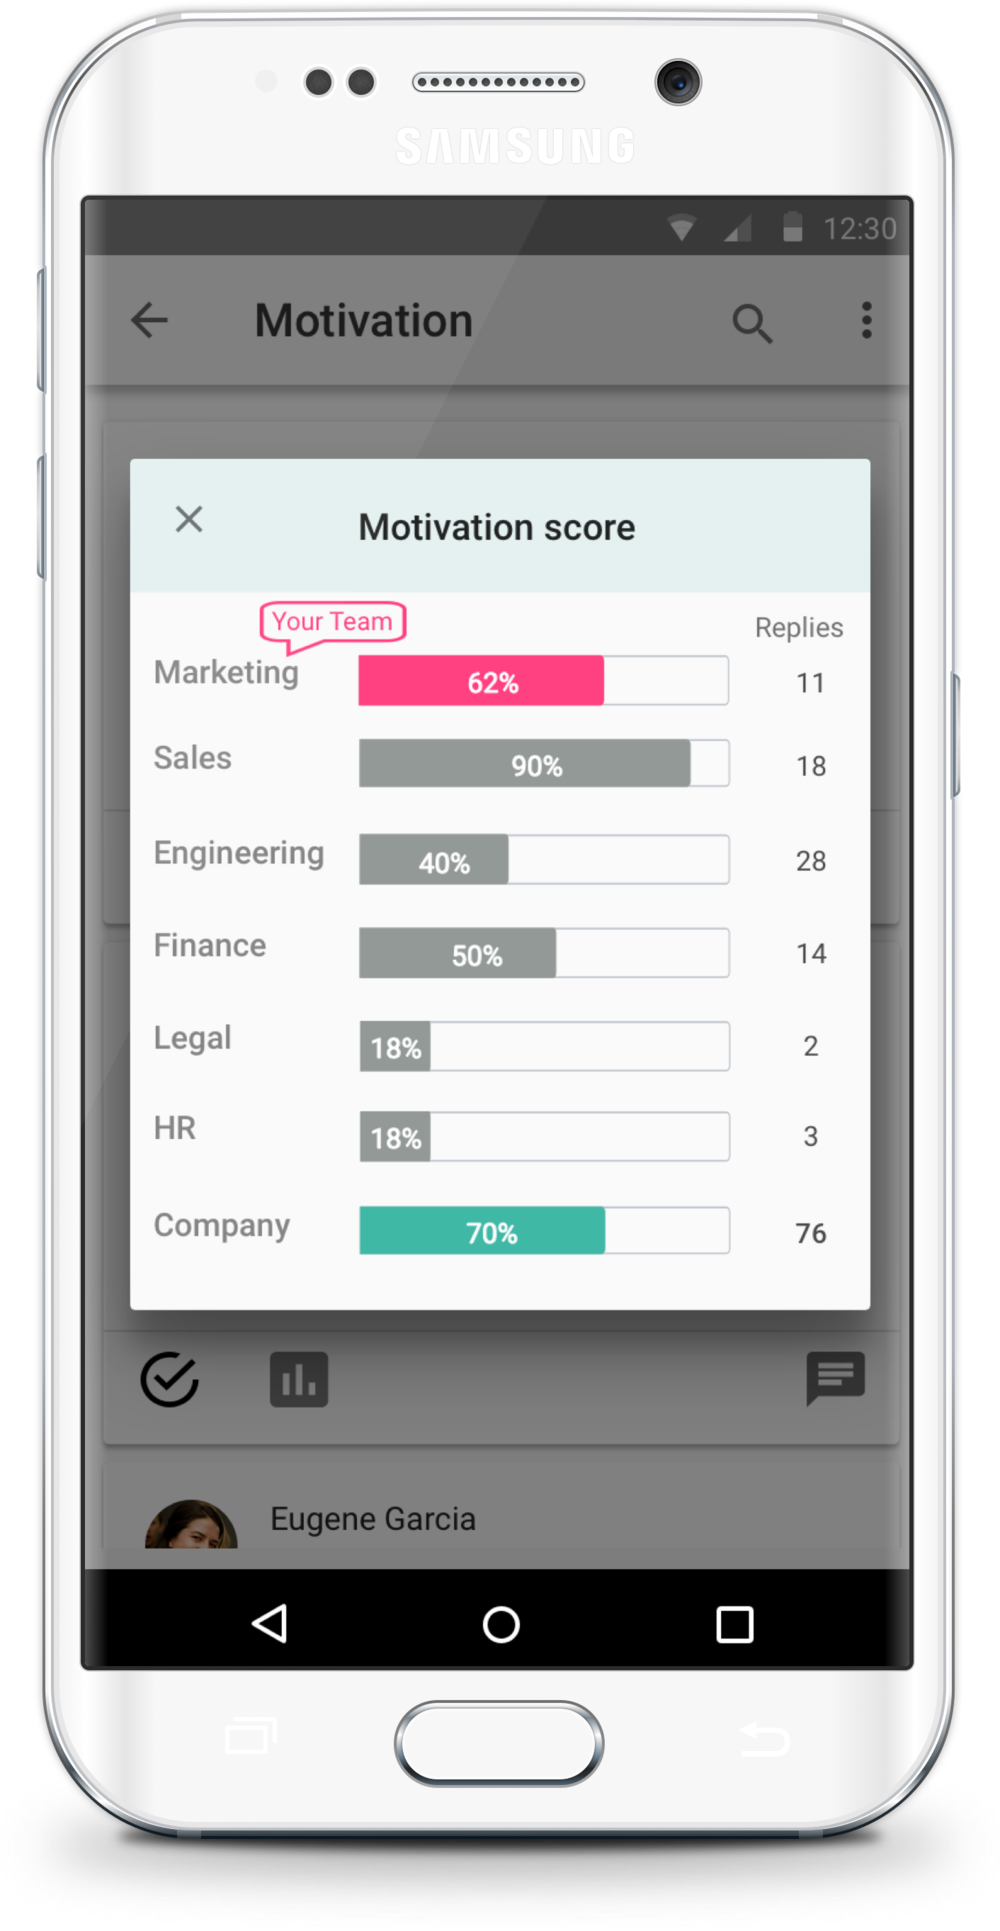 Motivation Score by Department